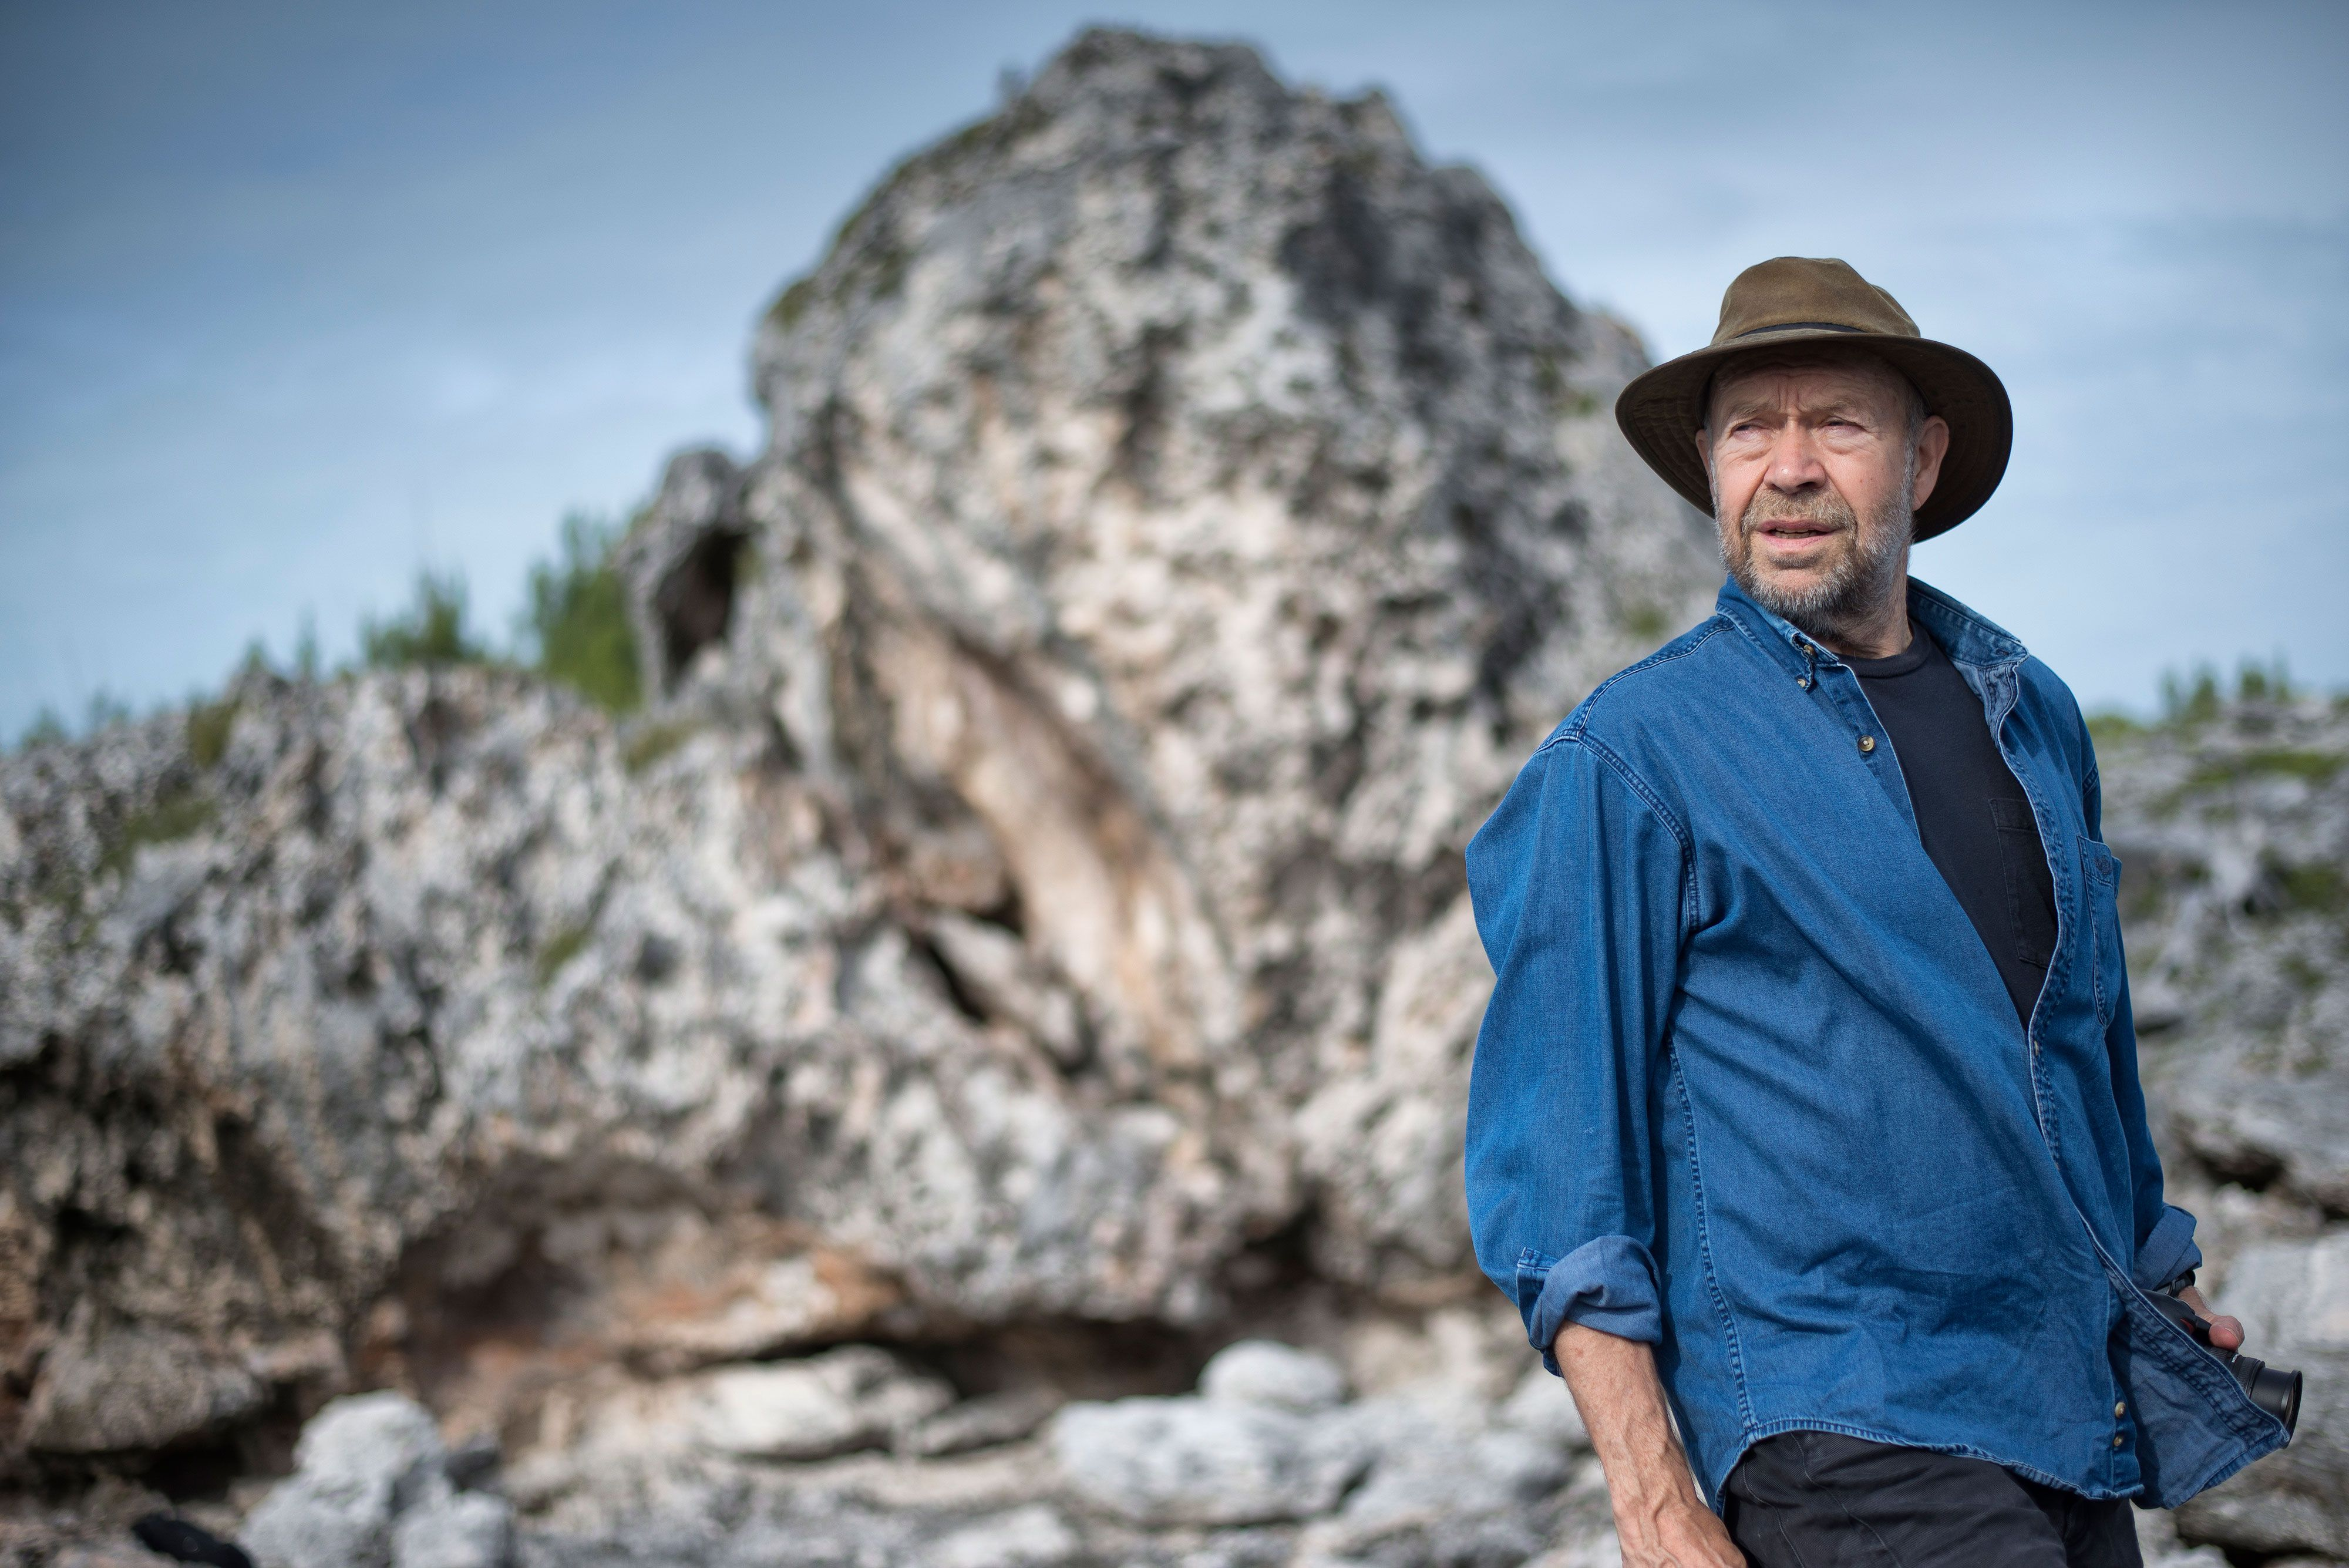 'The Planet Could Become Ungovernable': Climate Scientist James Hansen on Obama's Environmental Record, Scientific Reticence, and His Climate Lawsuit Against the Federal Government